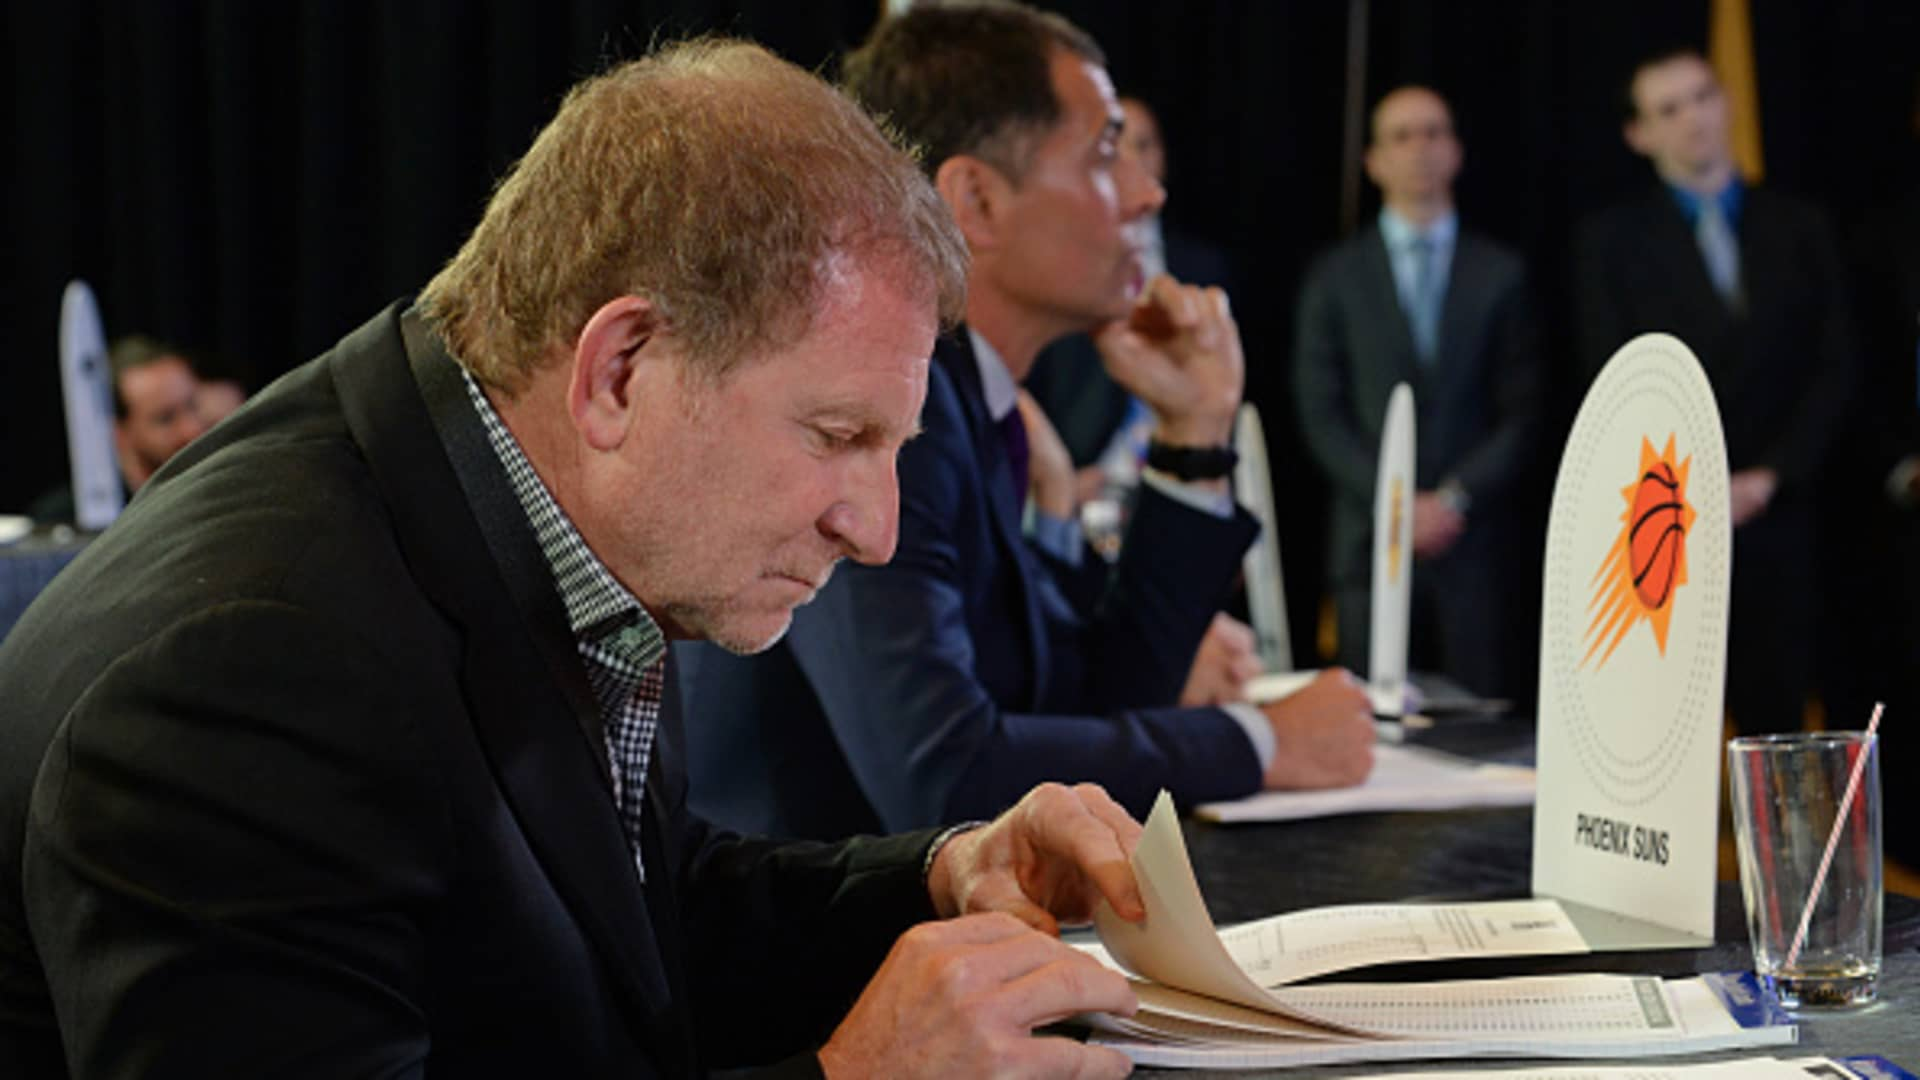 Robert Sarver of the Phoenix Suns takes notes inside the lottery room during the 2017 NBA Draft Lottery at the New York Hilton in New York, New York.